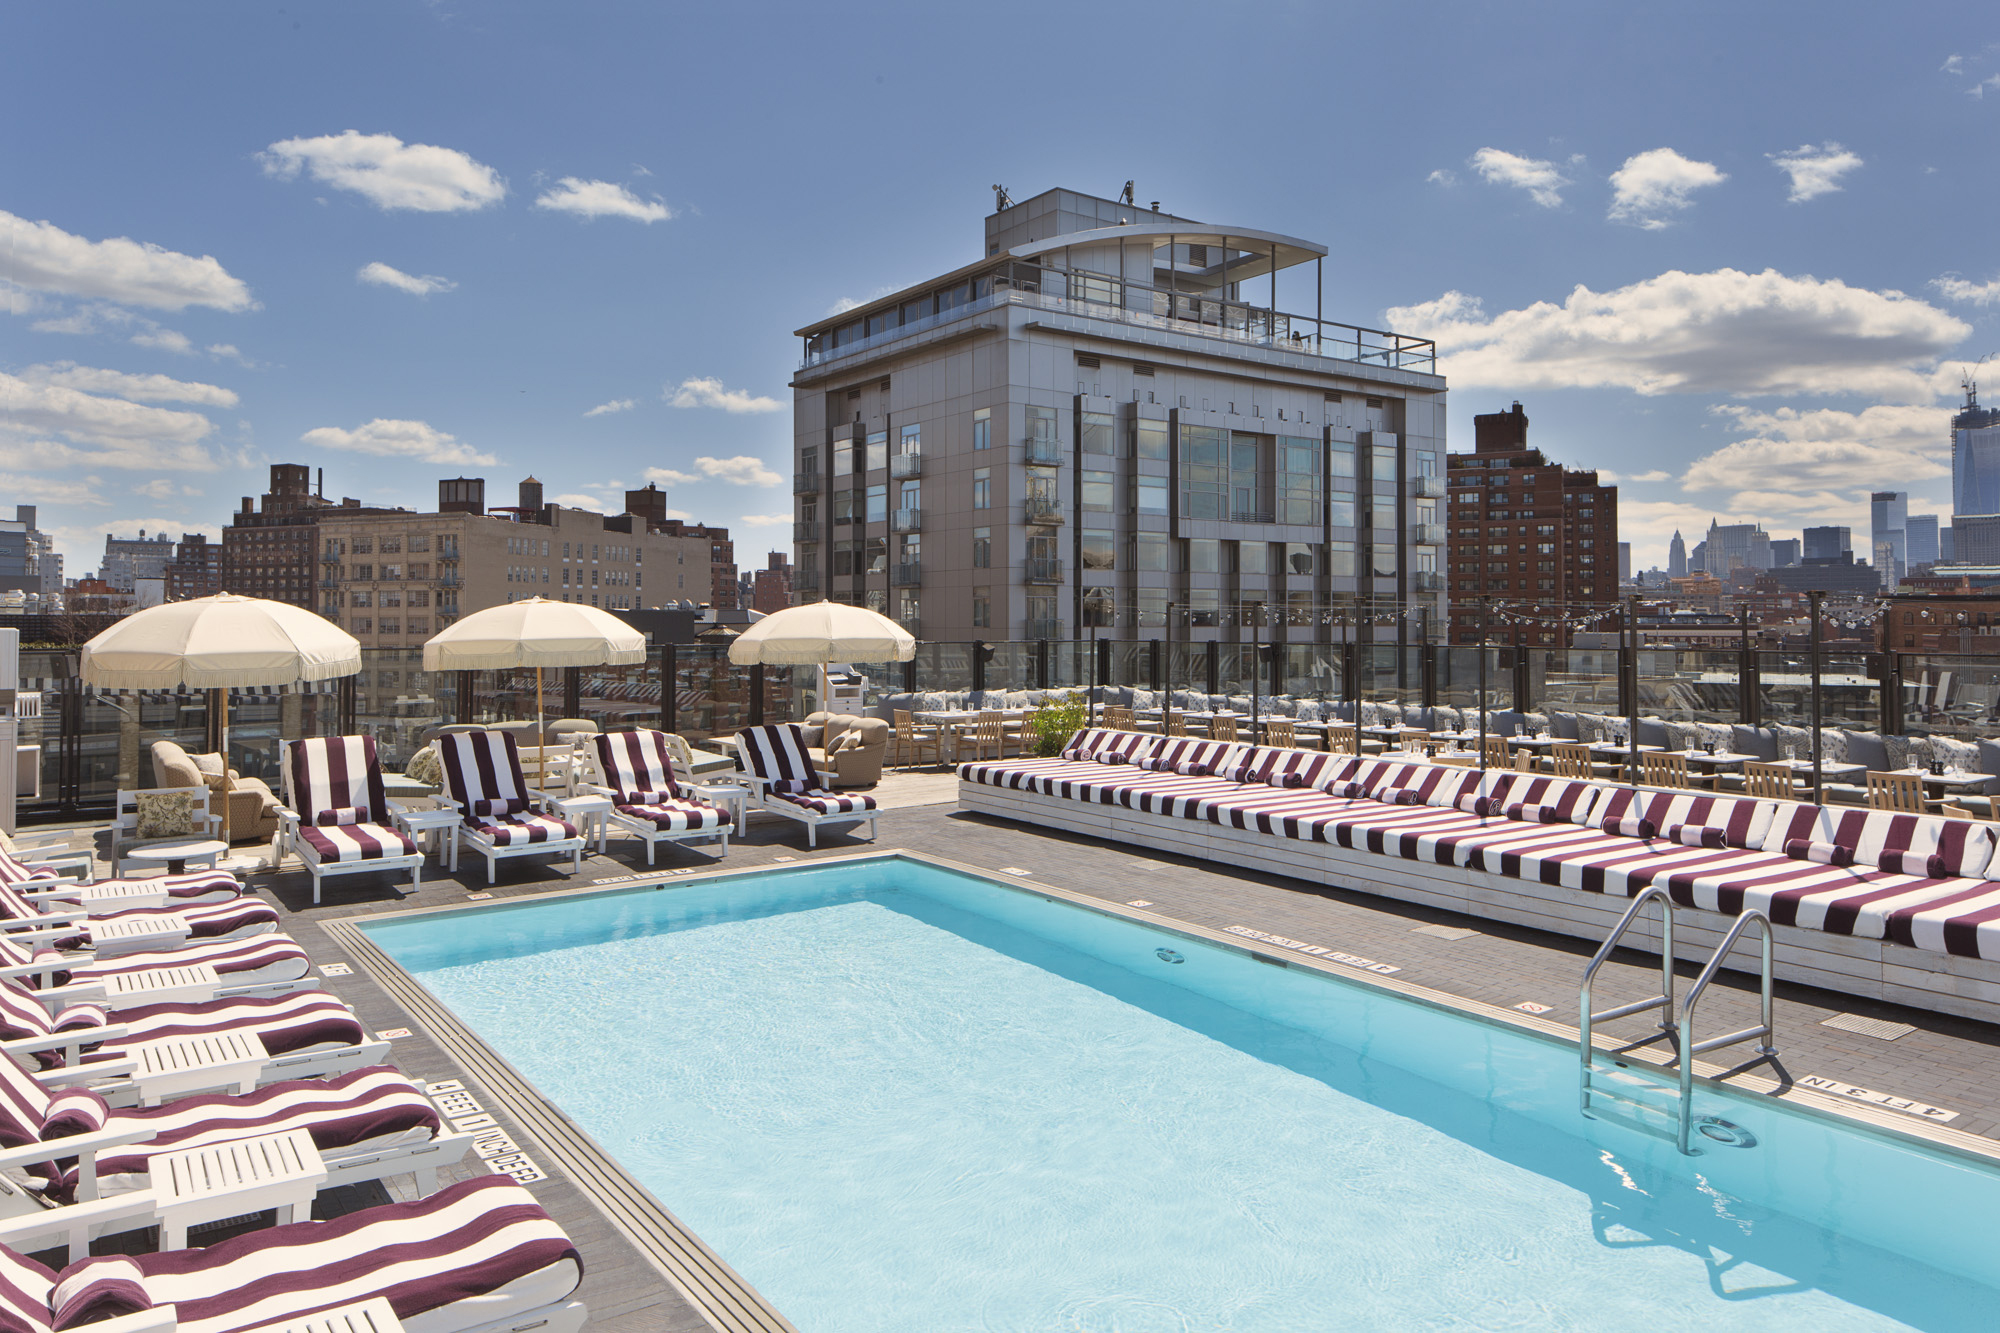 The best hotels with pools in NYC